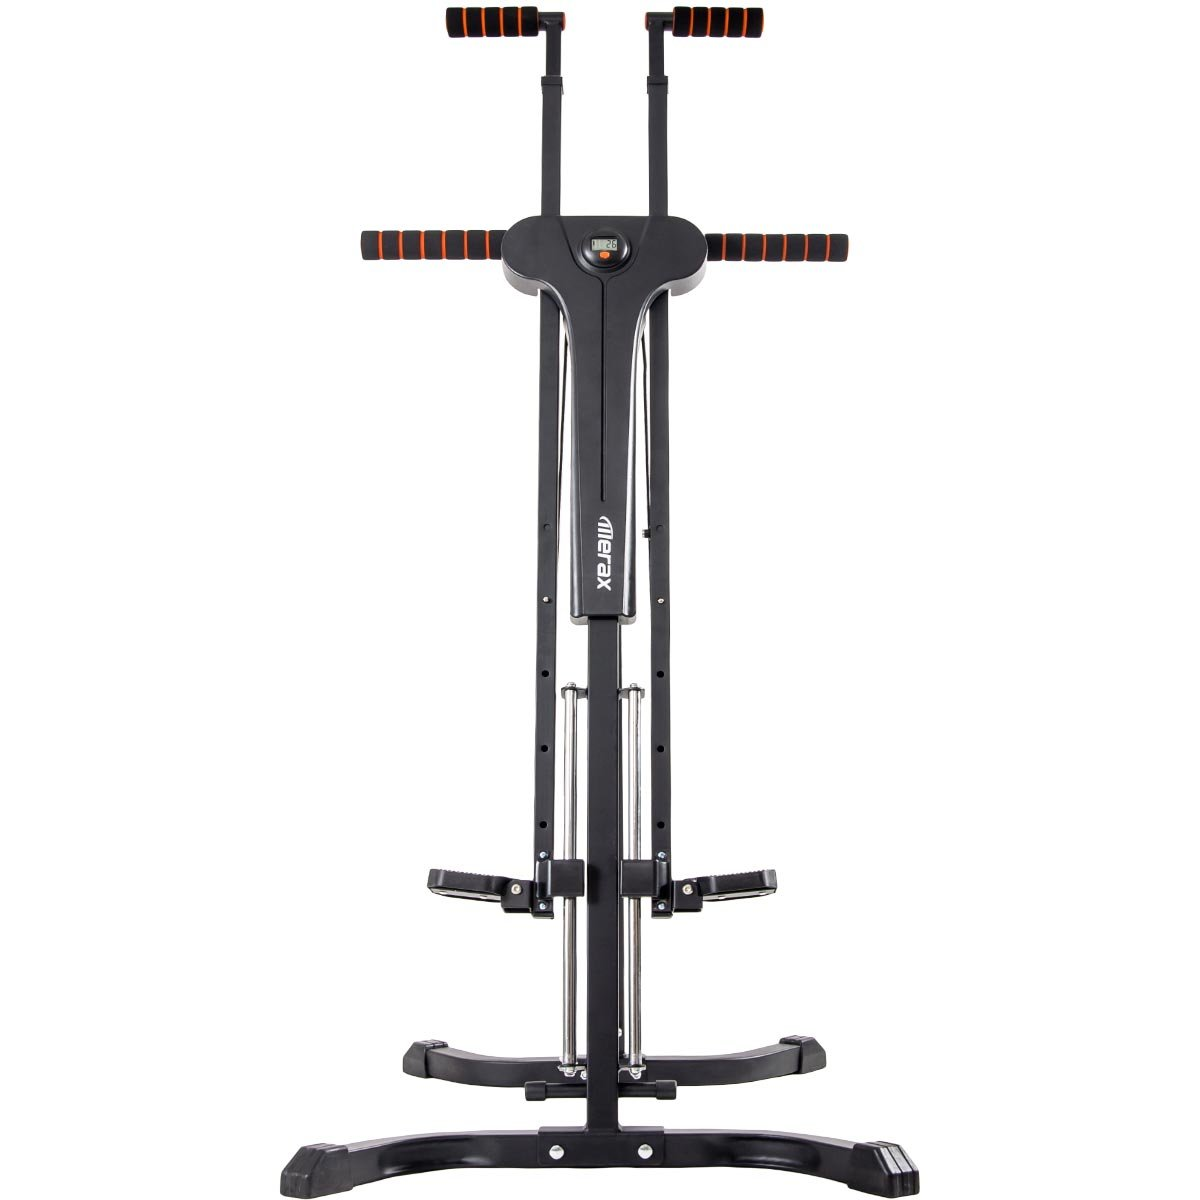 Merax Vertical Climber Exercise Folding Climbing Machine for Home Gym Folding Cardio Workout Machine by Merax (Image #1)